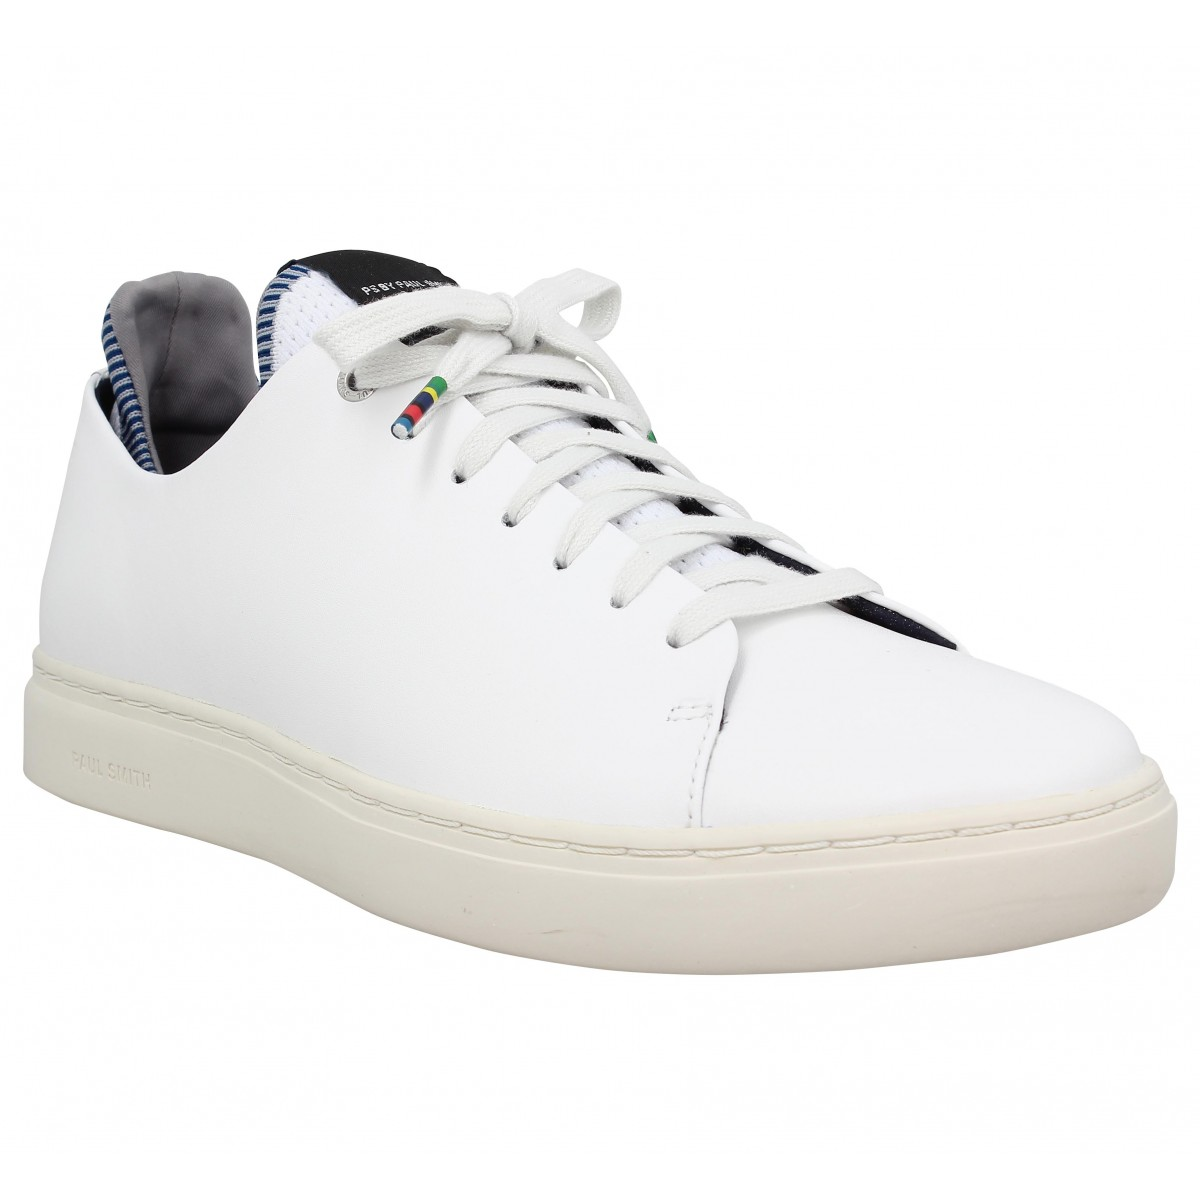 Baskets PAUL SMITH Sonix cuir Homme Blanc